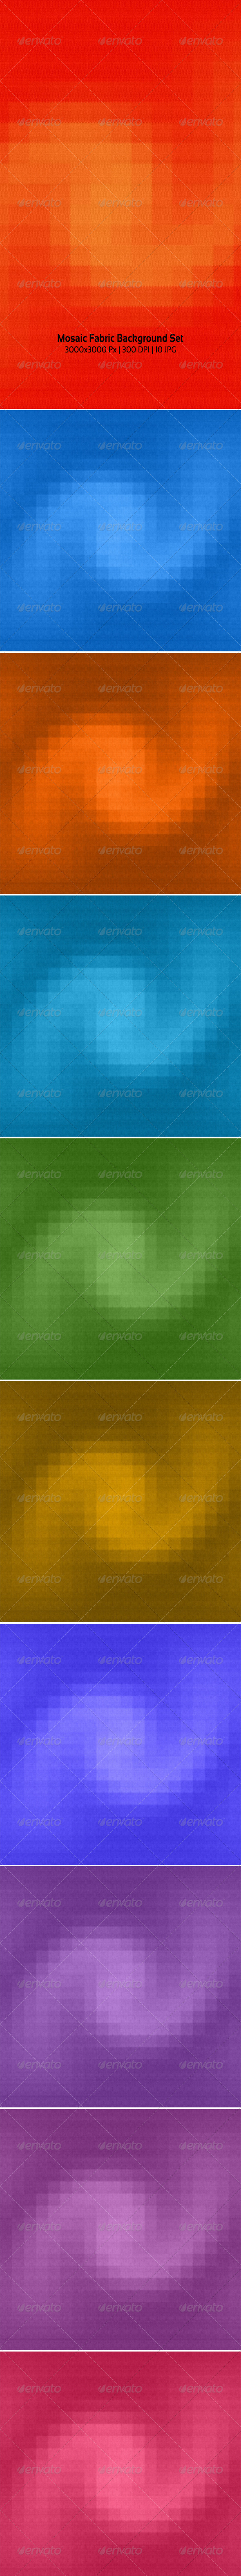 GraphicRiver Mosaic Fabric Background Set 4974258